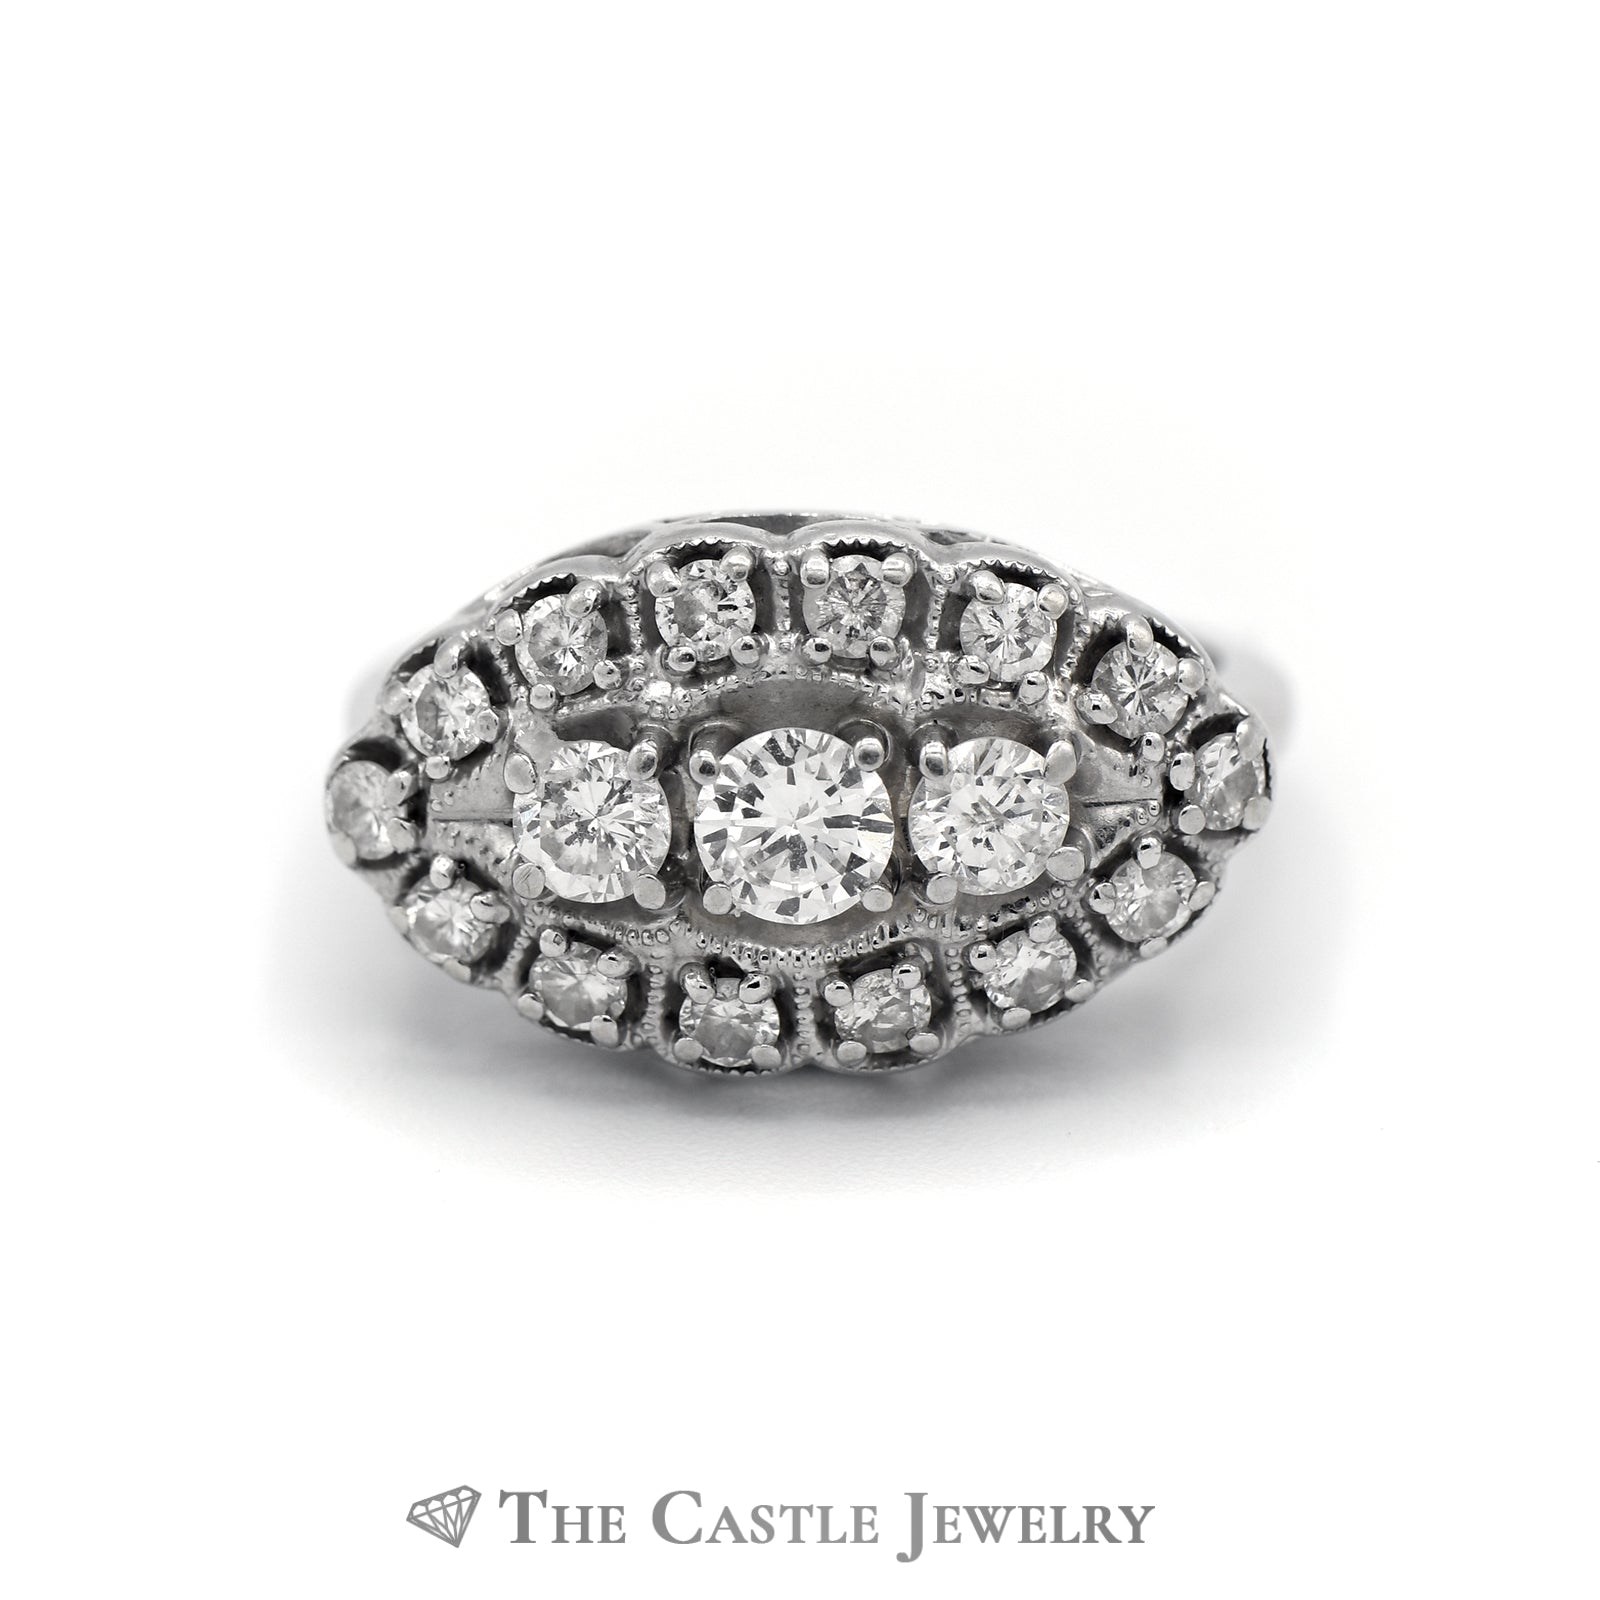 Oval Shaped 1cttw Diamond Cluster Ring in 14k White Gold